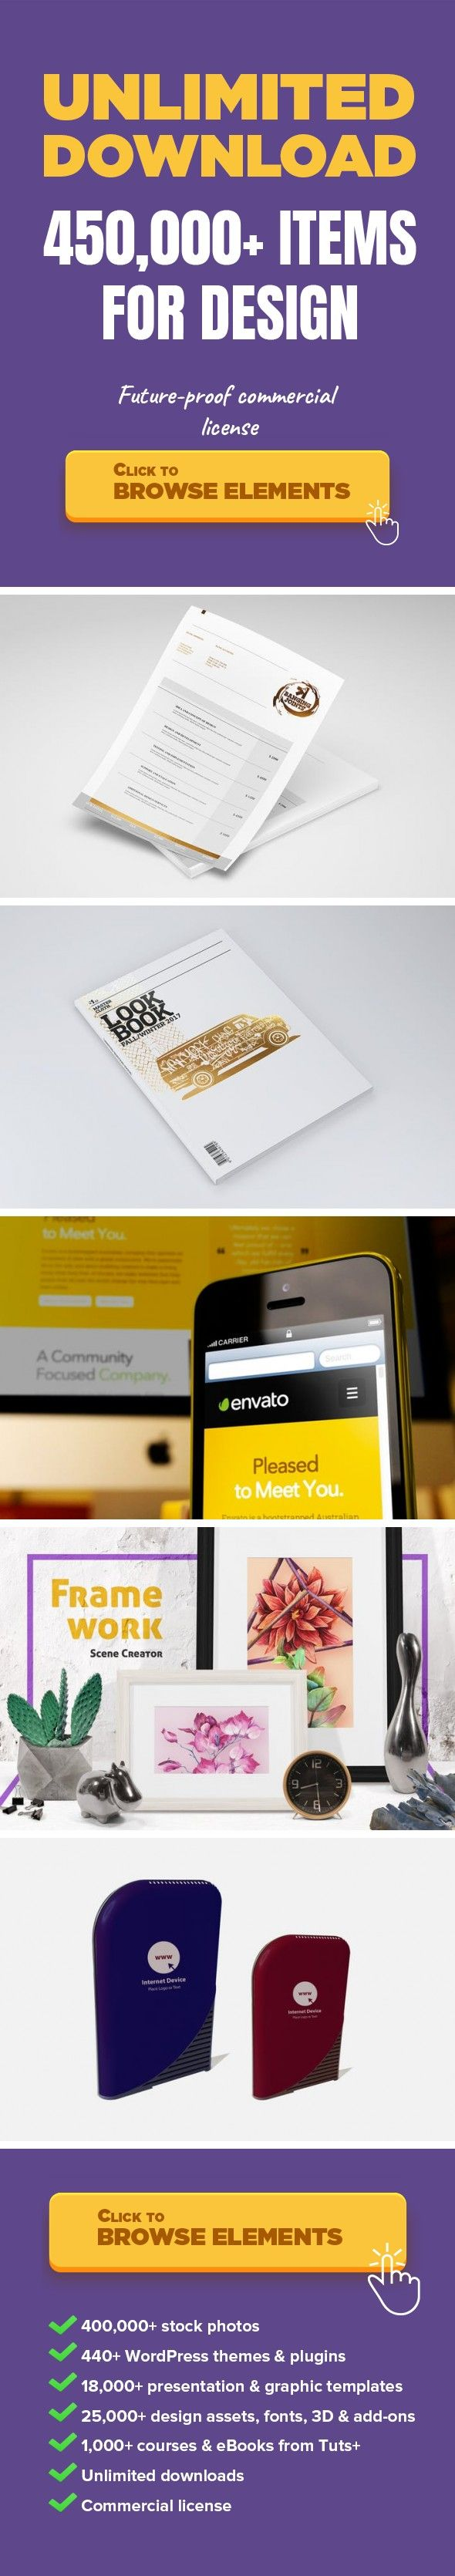 A4 Letterhead / Flyer / Poster Mock-up Graphic Templates, Product Mockups a4, paper, gold, emboss, stationery, company, booklet, business, poster, flyer, identity, logo, template, print   Photorealistic, clean, modern and fully customizable A4 Letterhead mockup. Showcase your design and layouts into a realistic appearance. We craft solutions that help brands stand out.Designs in the preview image ...